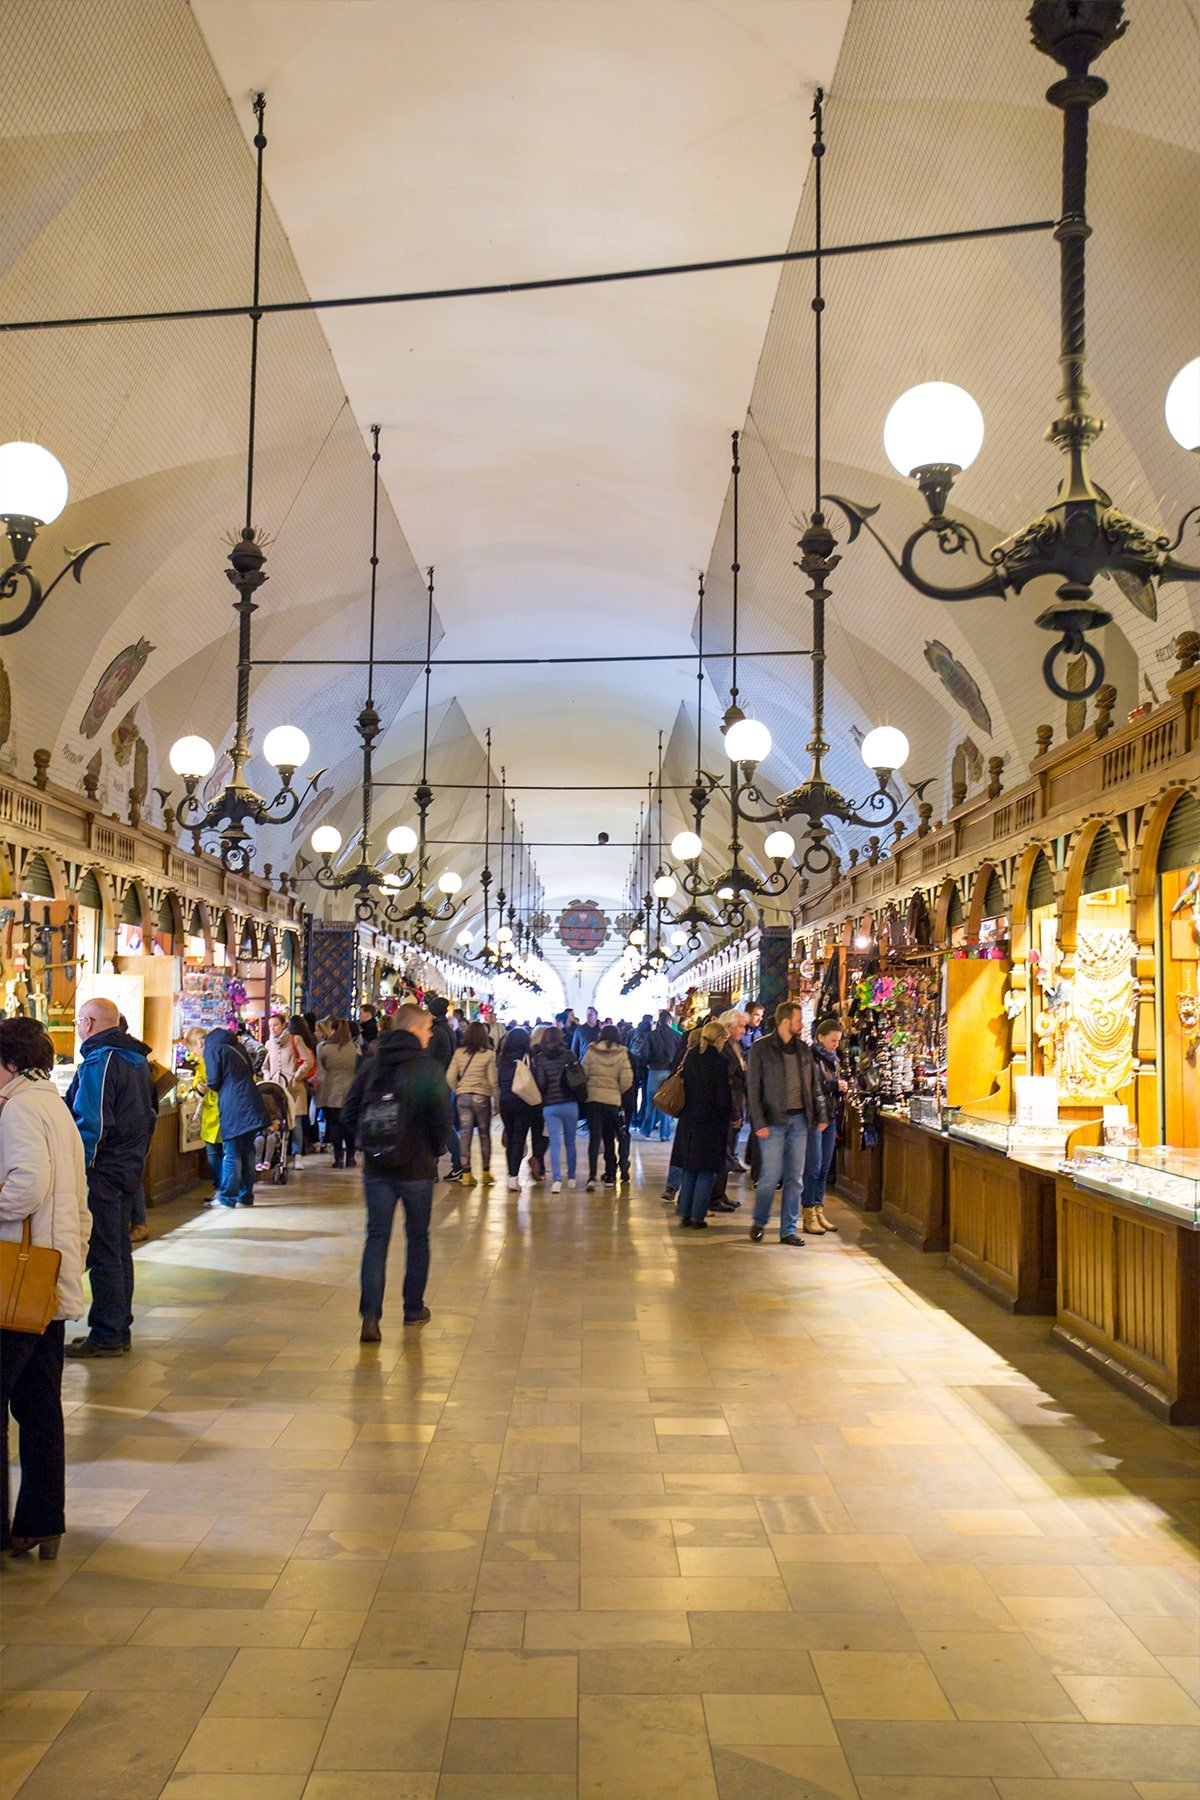 Krakow Cloth Hall- tons of great prducts and a fun place to visit!